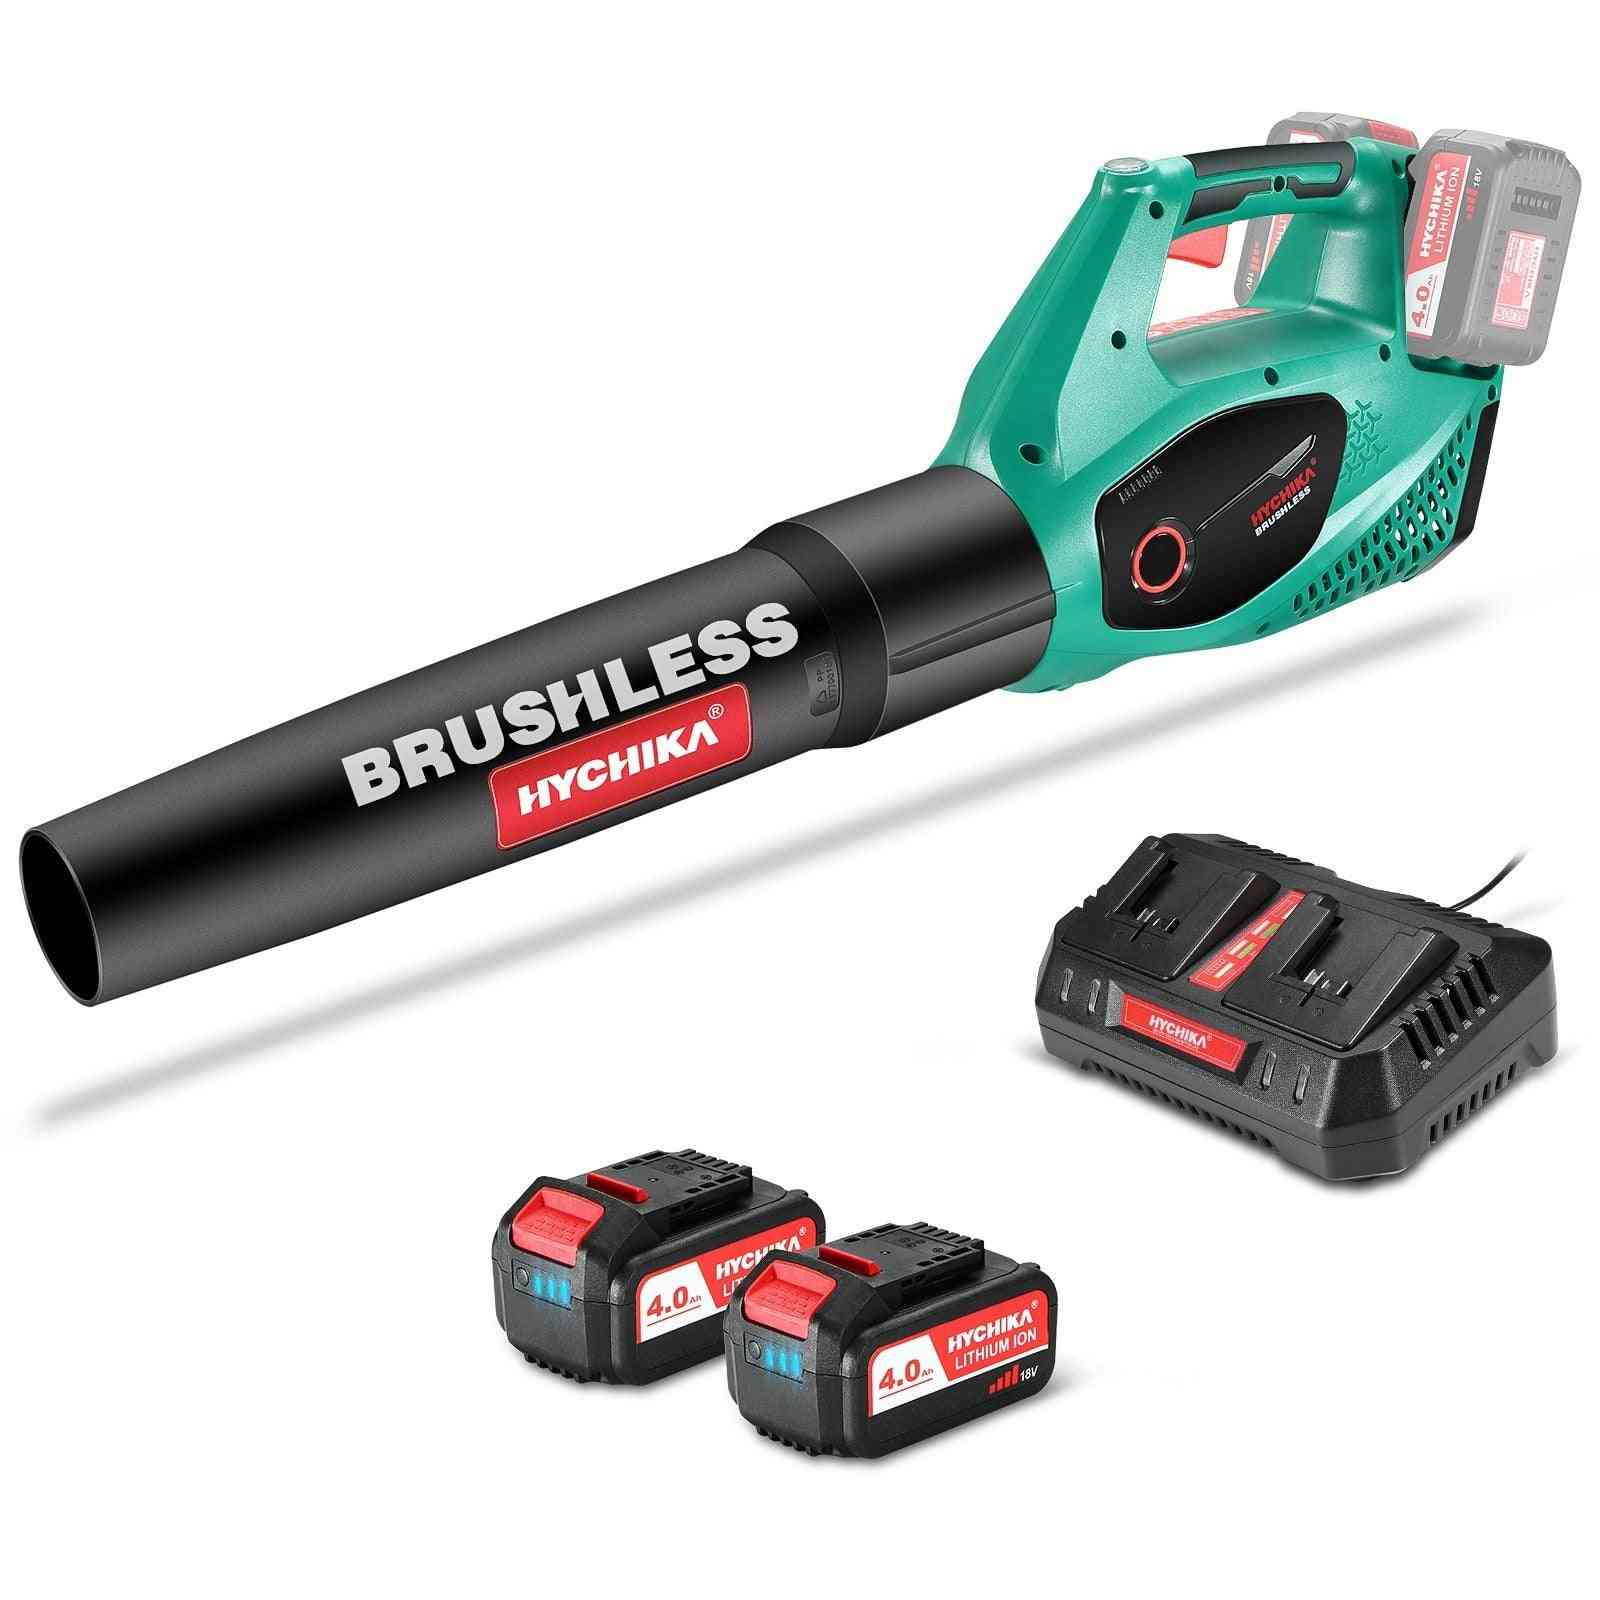 36v Brushless Leaf Blower Cordless Lithium Battery Cleaning Dust Collector